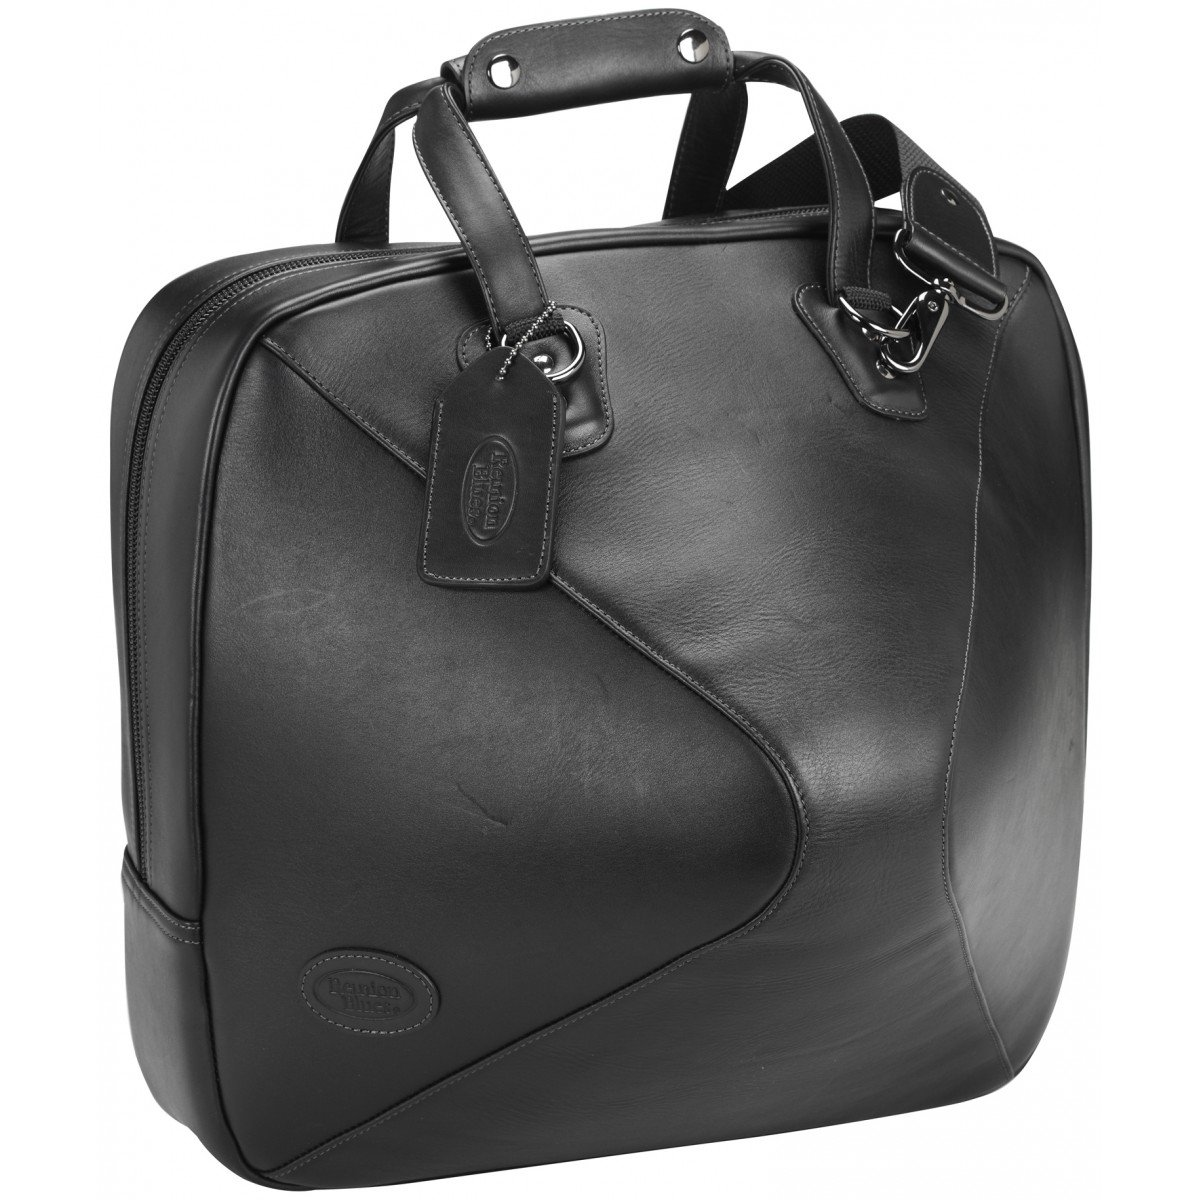 Reunion Blues French Horn Bag - Detachable Bell, Black Leather Ace Products Group 565-15-29